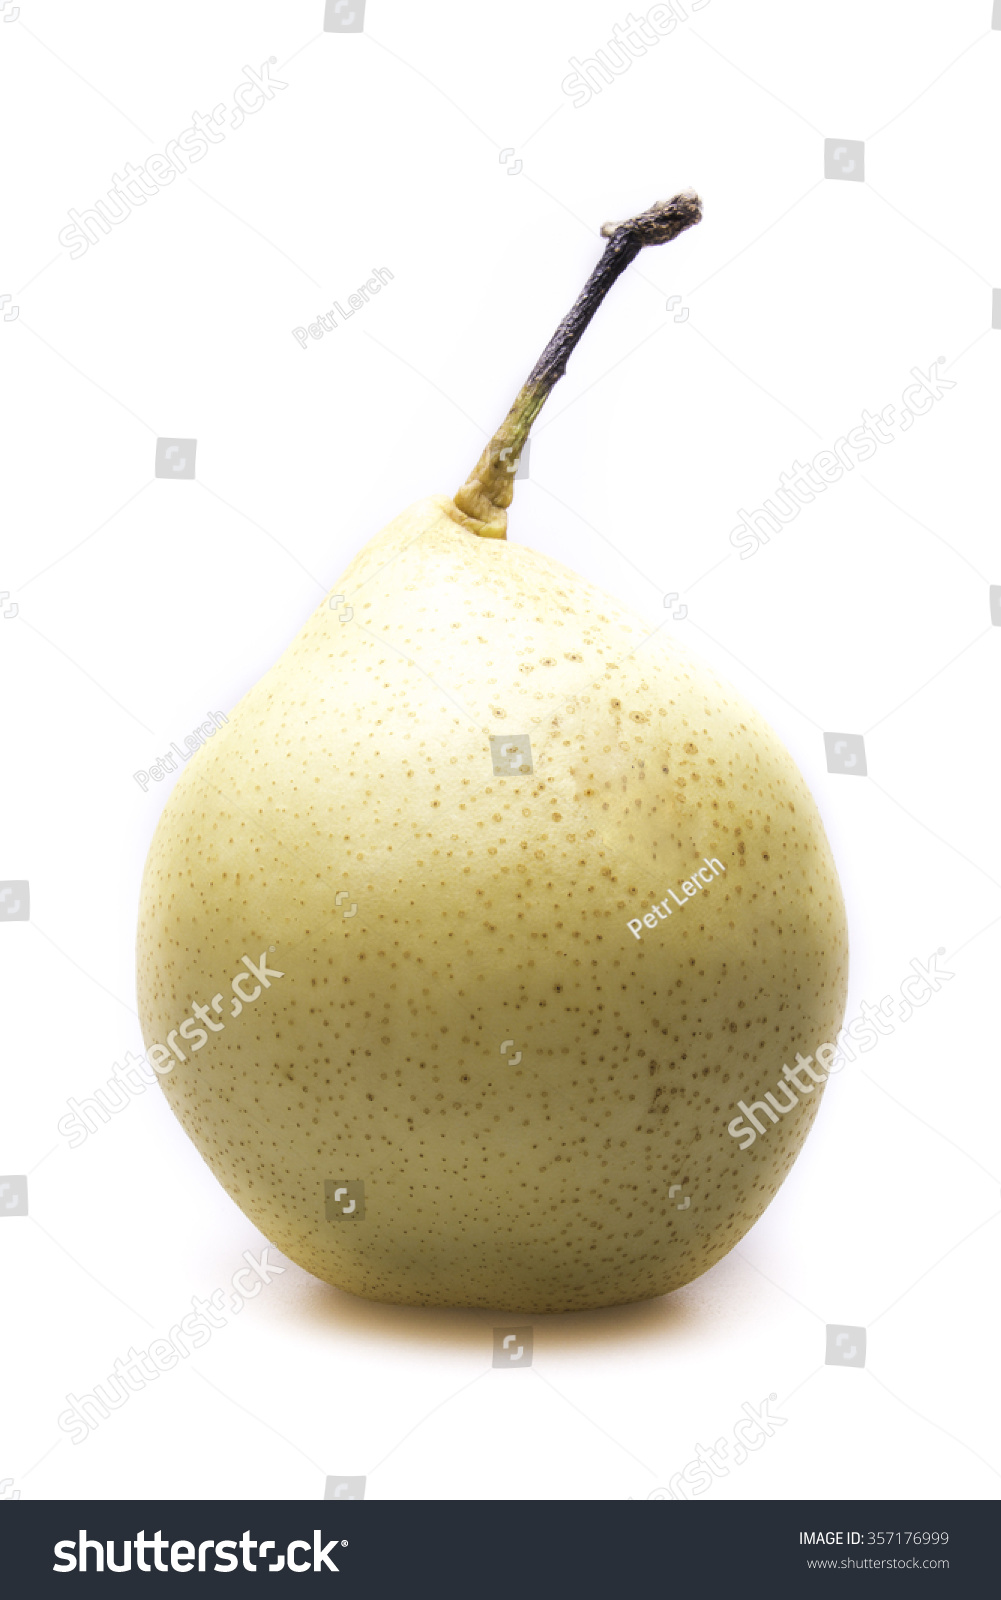 how to tell if nashi pear is ripe